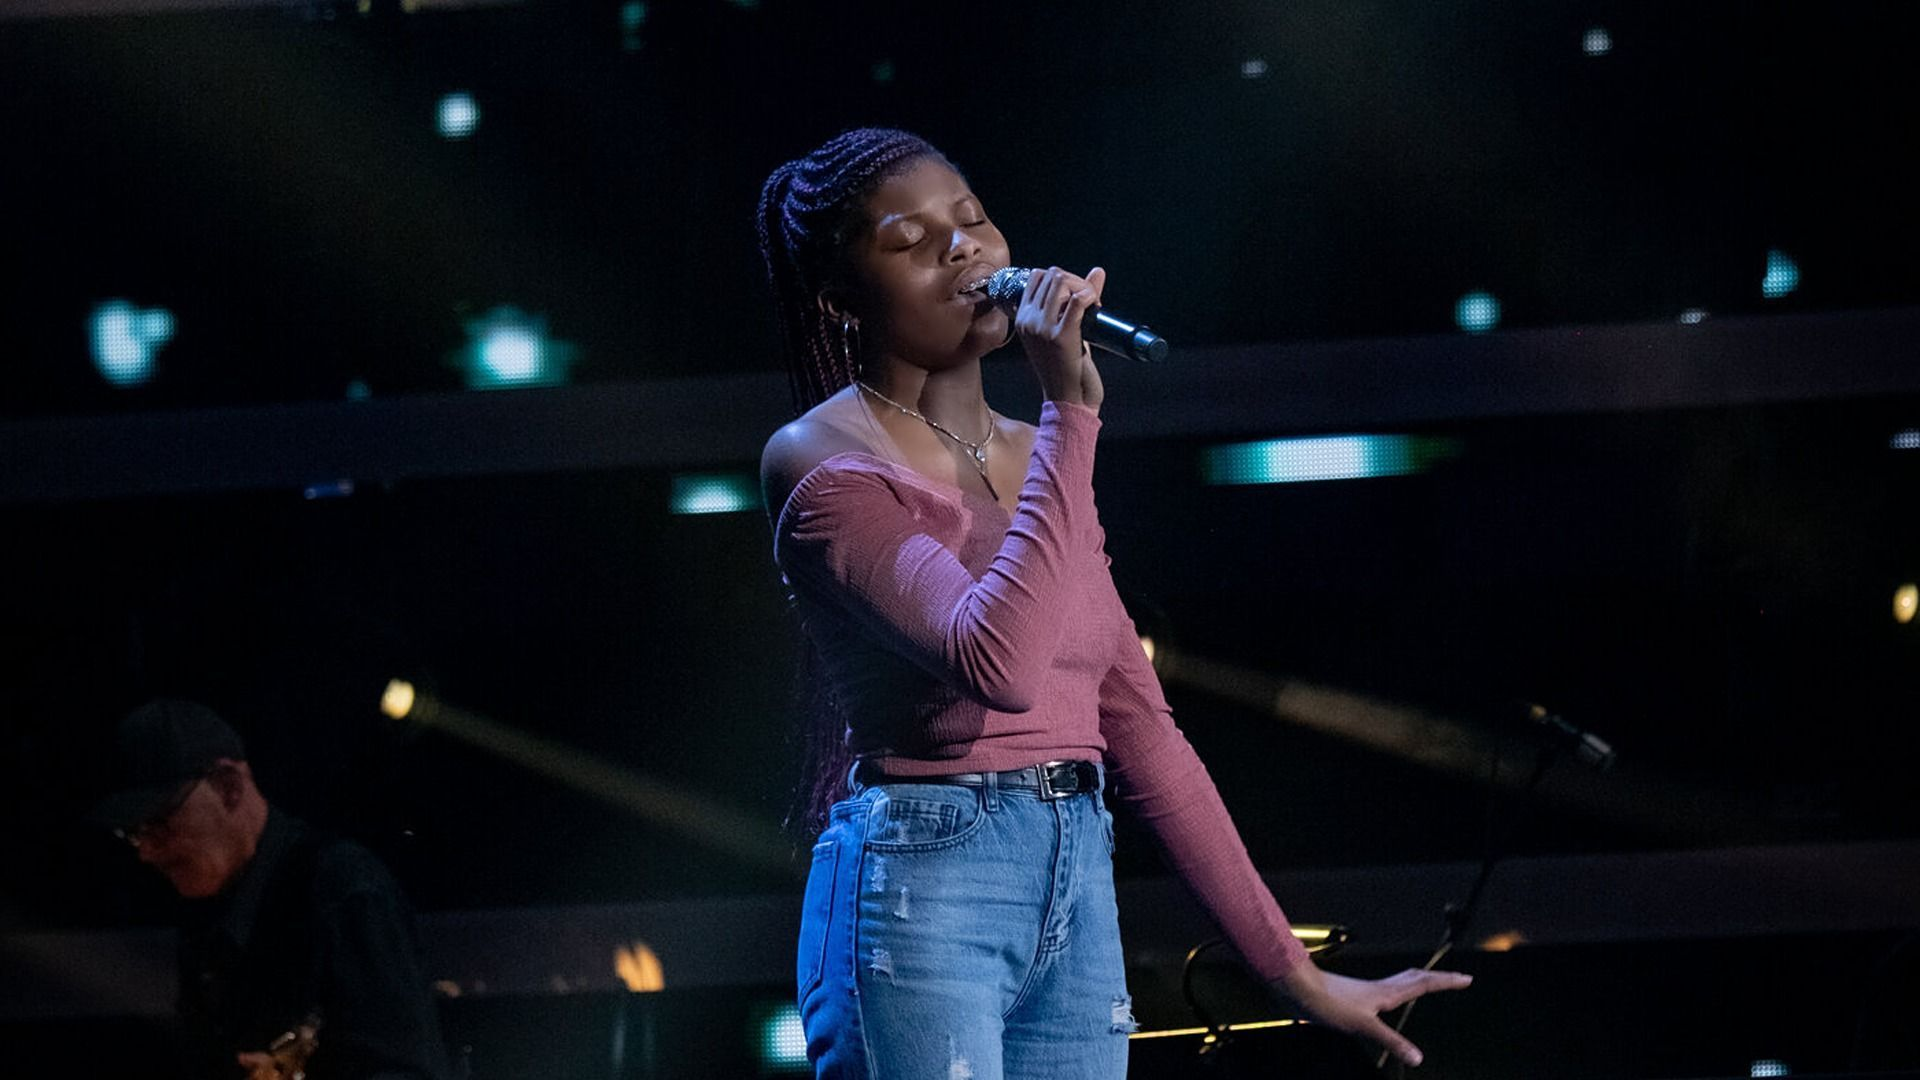 Grace - Light On | The Voice Kids 2021